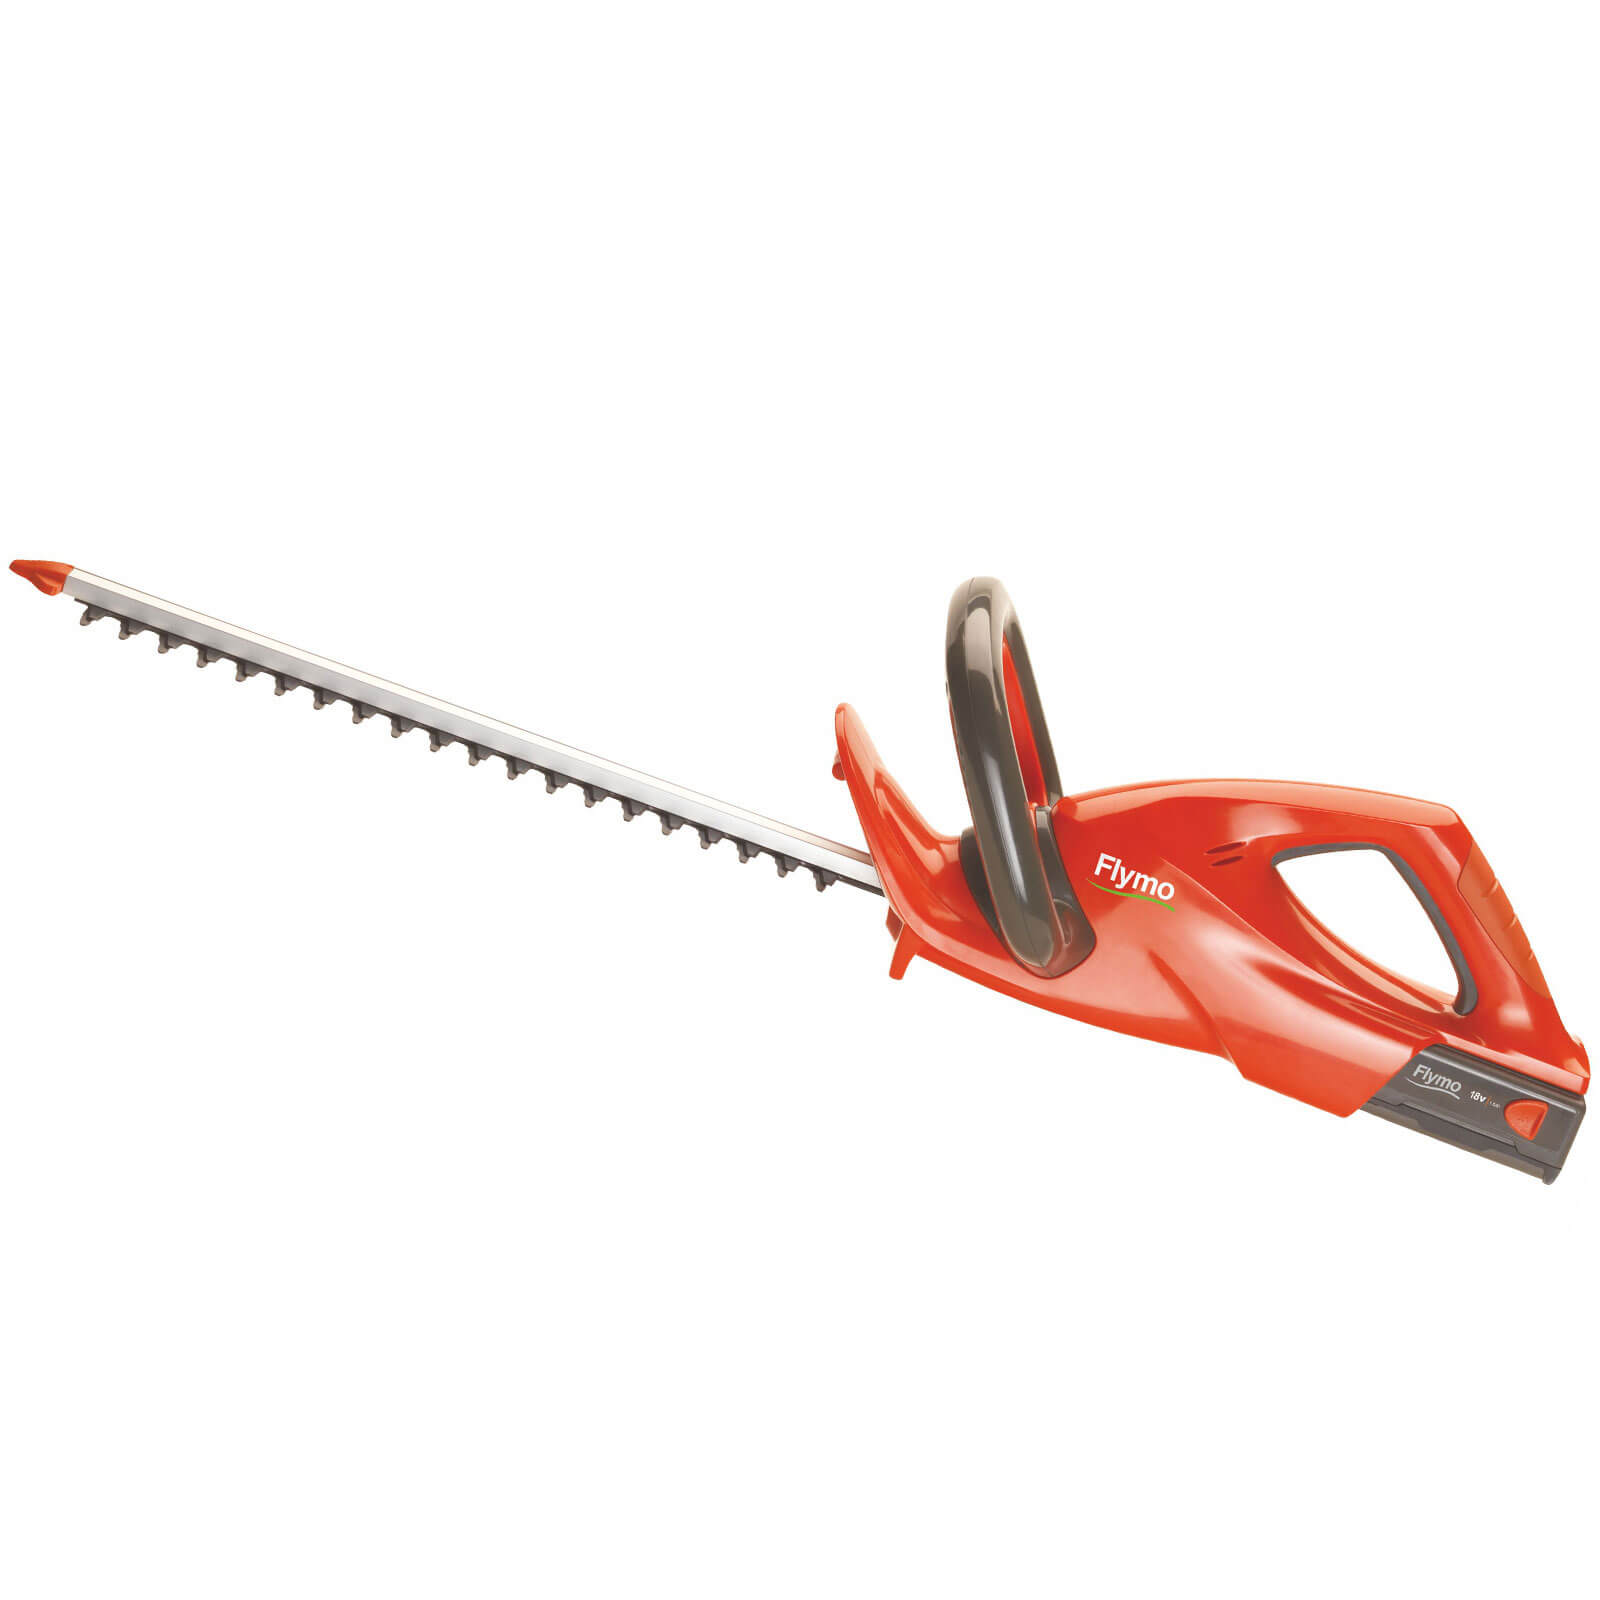 Flymo EASICUT 420CL 18v Cordless Hedge Trimmer 420mm Blade Length with 1 NiMH Battery 1.6ah